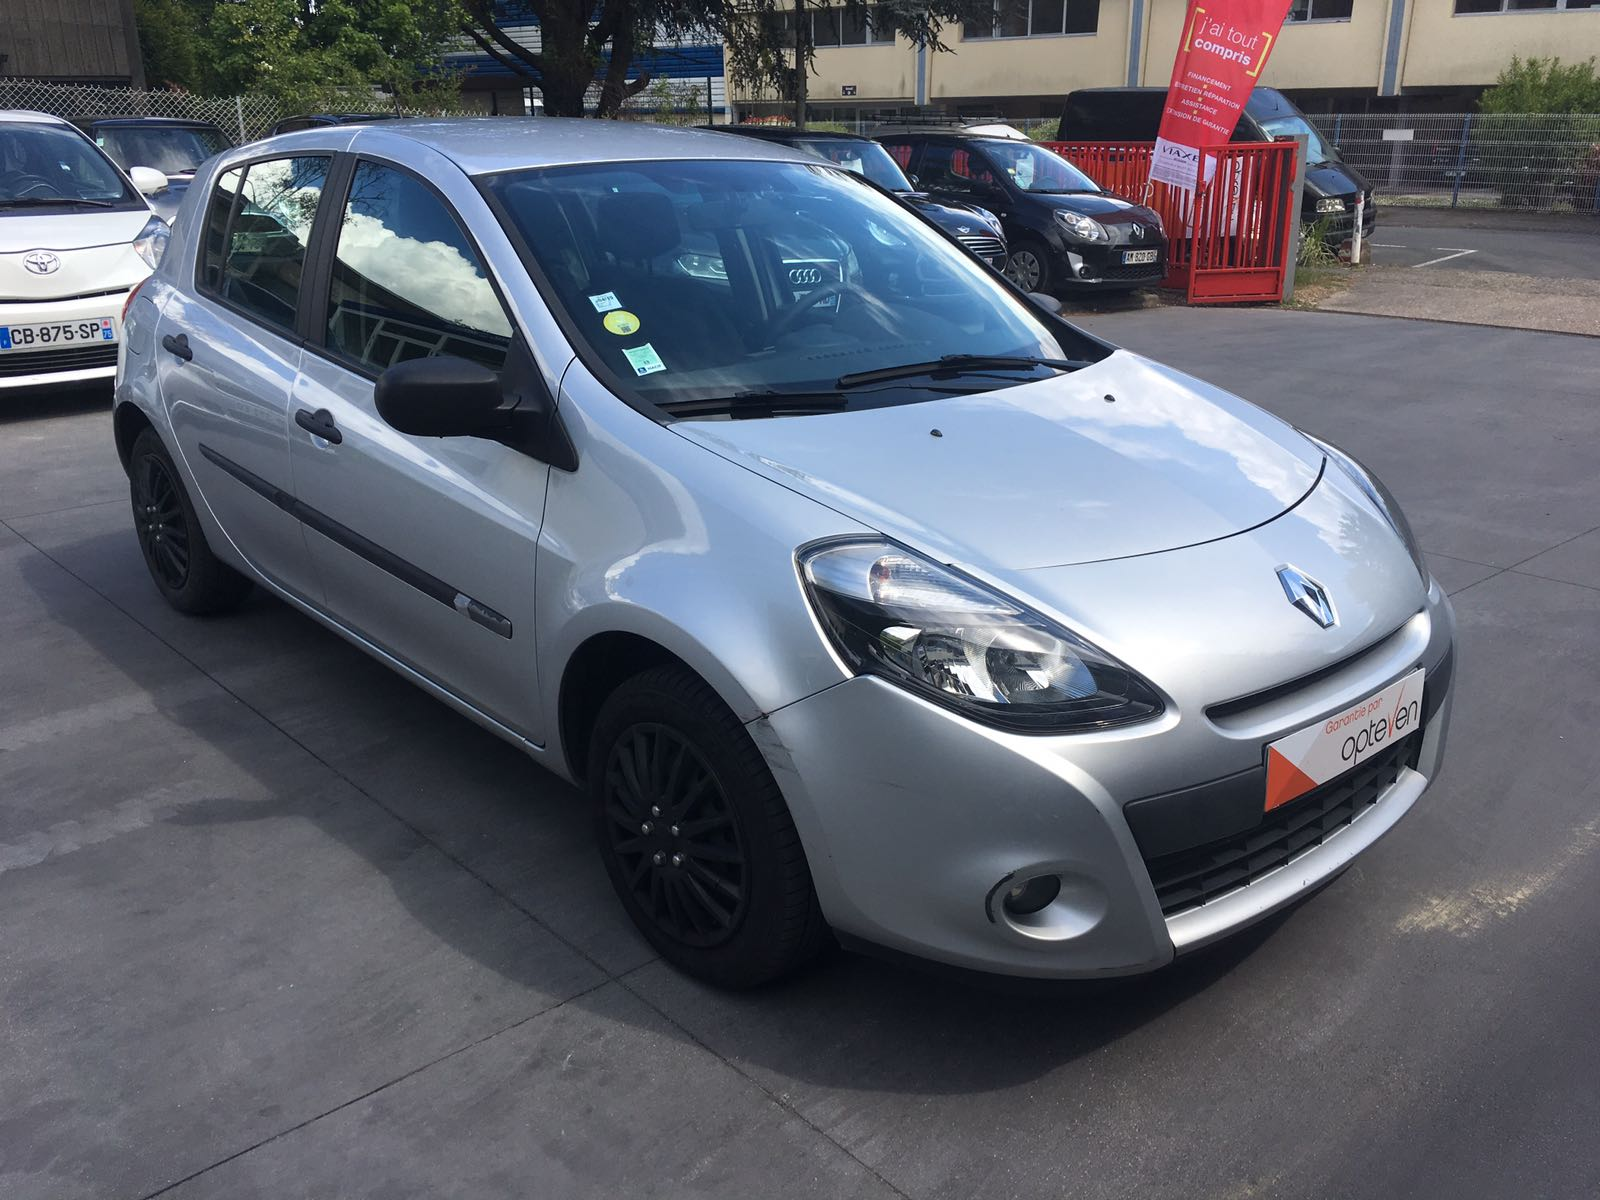 voiture renault clio iii dci 75 eco2 expression clim euro 5 occasion diesel 2011 56402 km. Black Bedroom Furniture Sets. Home Design Ideas